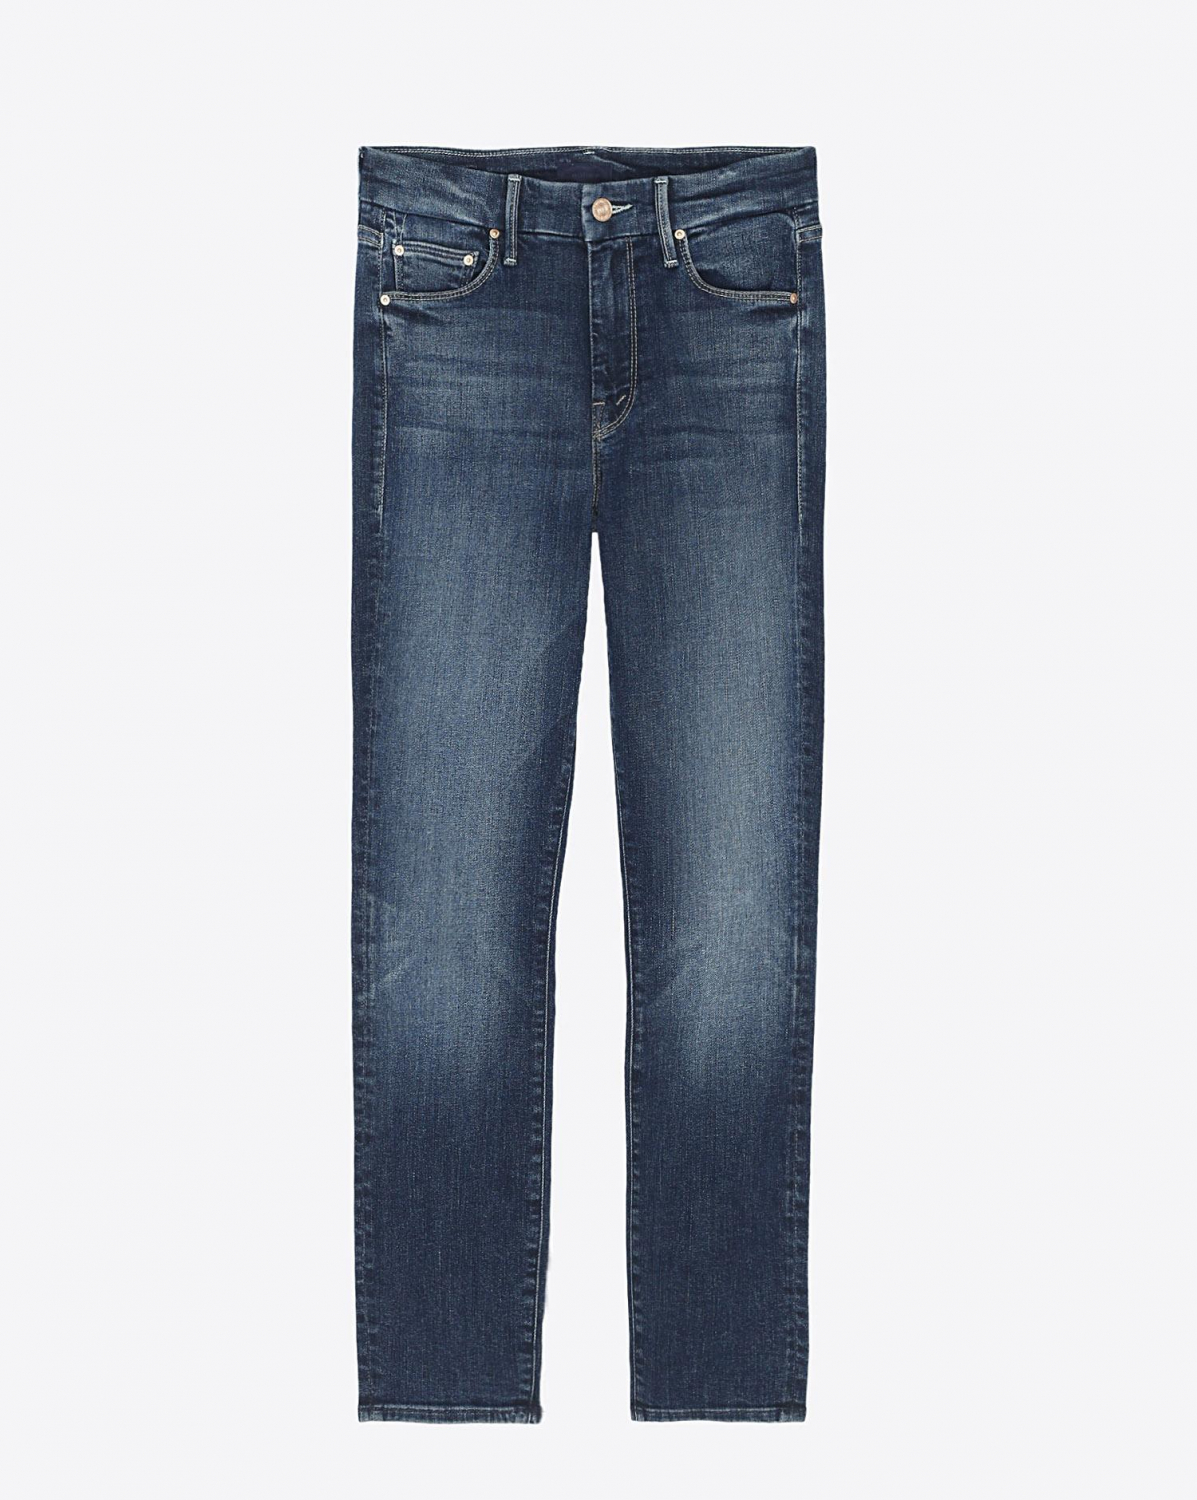 Mother Denim The Looker Cropped Skinny - On The Edge